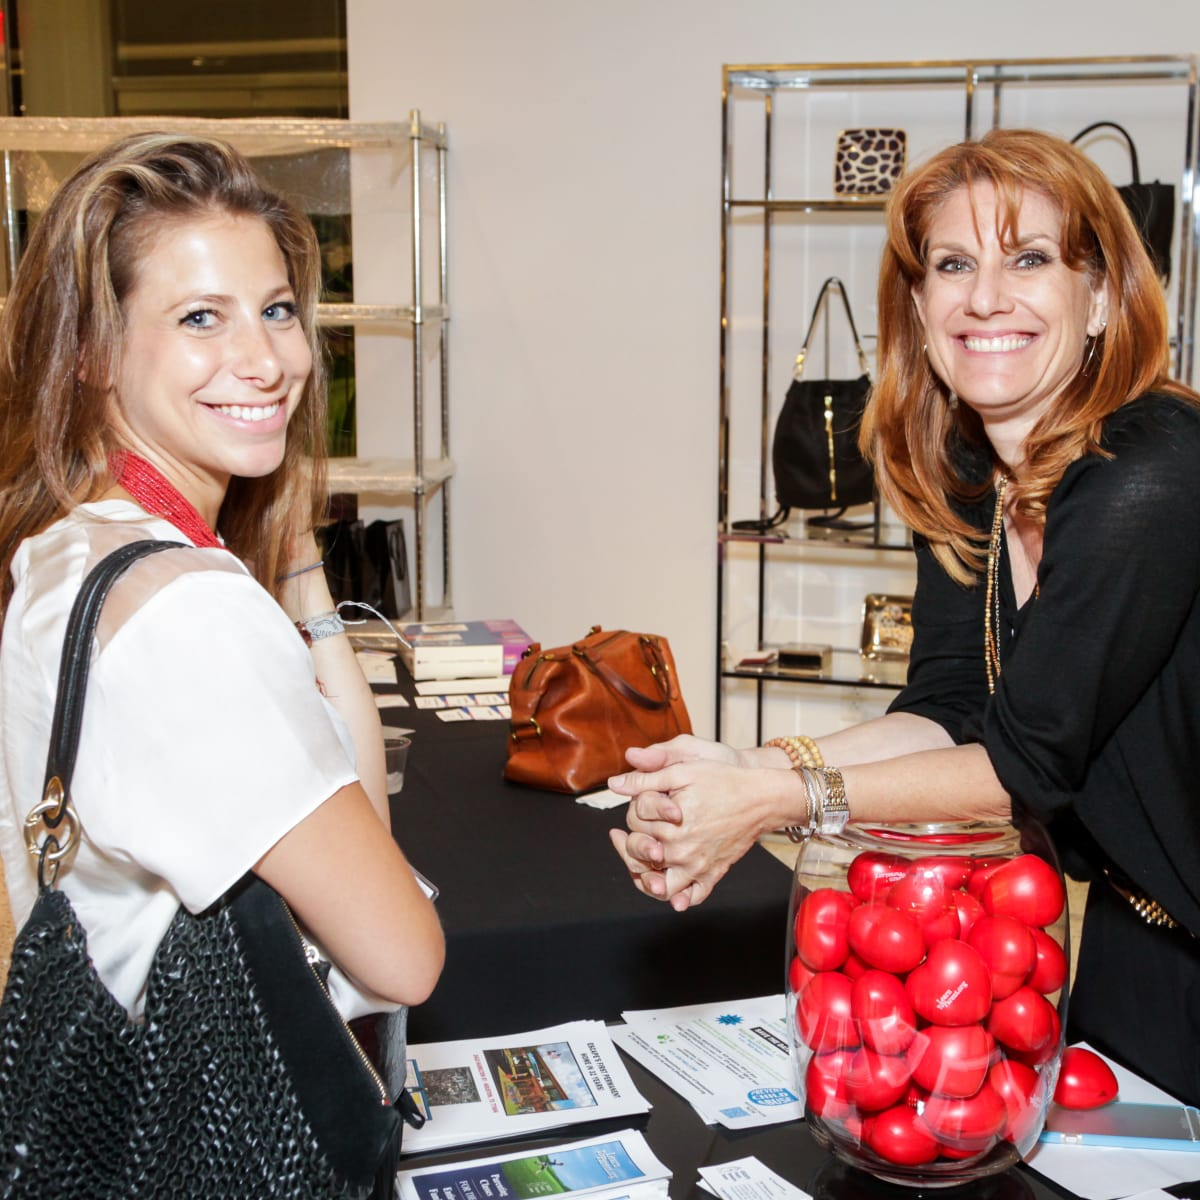 Houston, Ellevate event at Tootsies, August 2015, Rachel Tenenbaum, Jill Wasserstrom